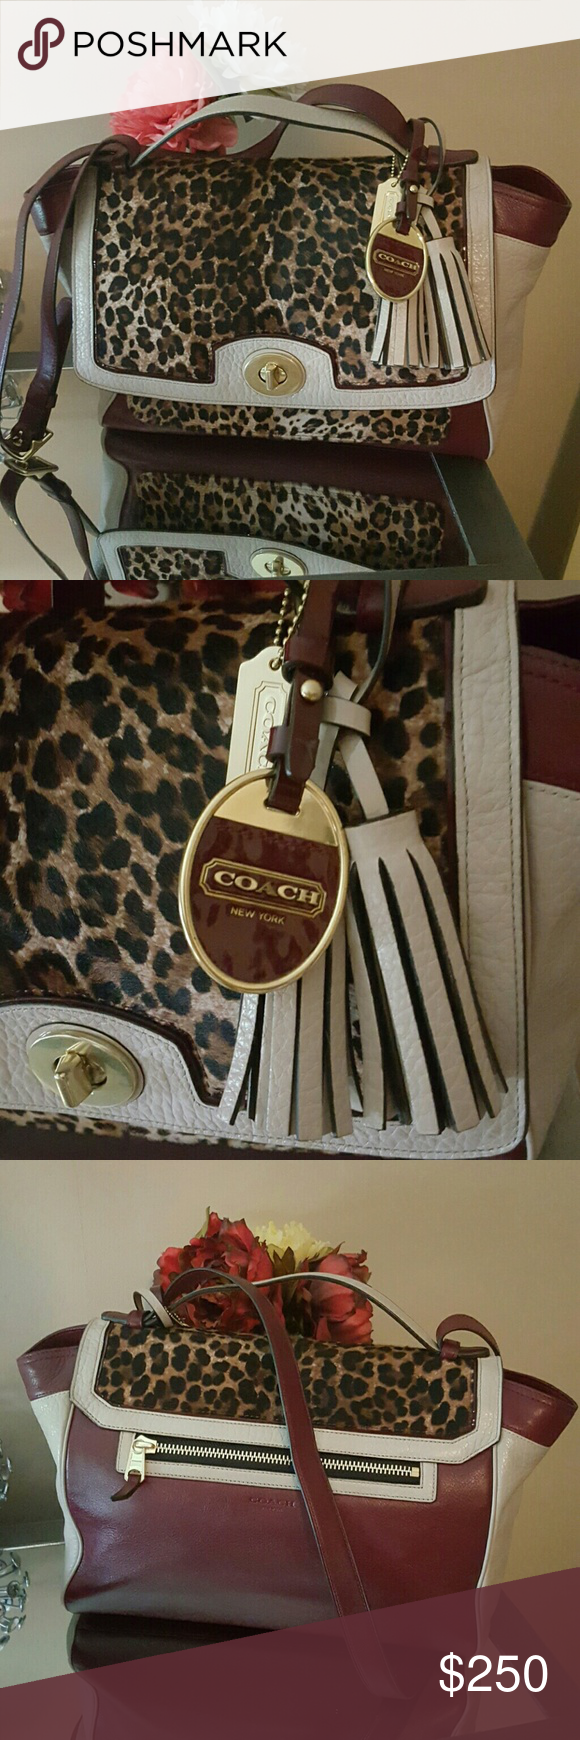 Authentic Coach Ocelot Leopard Haircalf Satchel This Coach bag is exquisite! Genuine colorblock leather with Ocelot haircalf. Tassels and charms adorn the bag for the perfect final touch. Great size and is perfect for everyday use! Turn lock closure, two handles and inside pockets.  Excellent condition, the bag still smells new. Only wear is slight wear to corners that isn't noticeable unless you are up close. Original price over $1,000. Definetly not your run-of-the-mill Coach bag! Style…